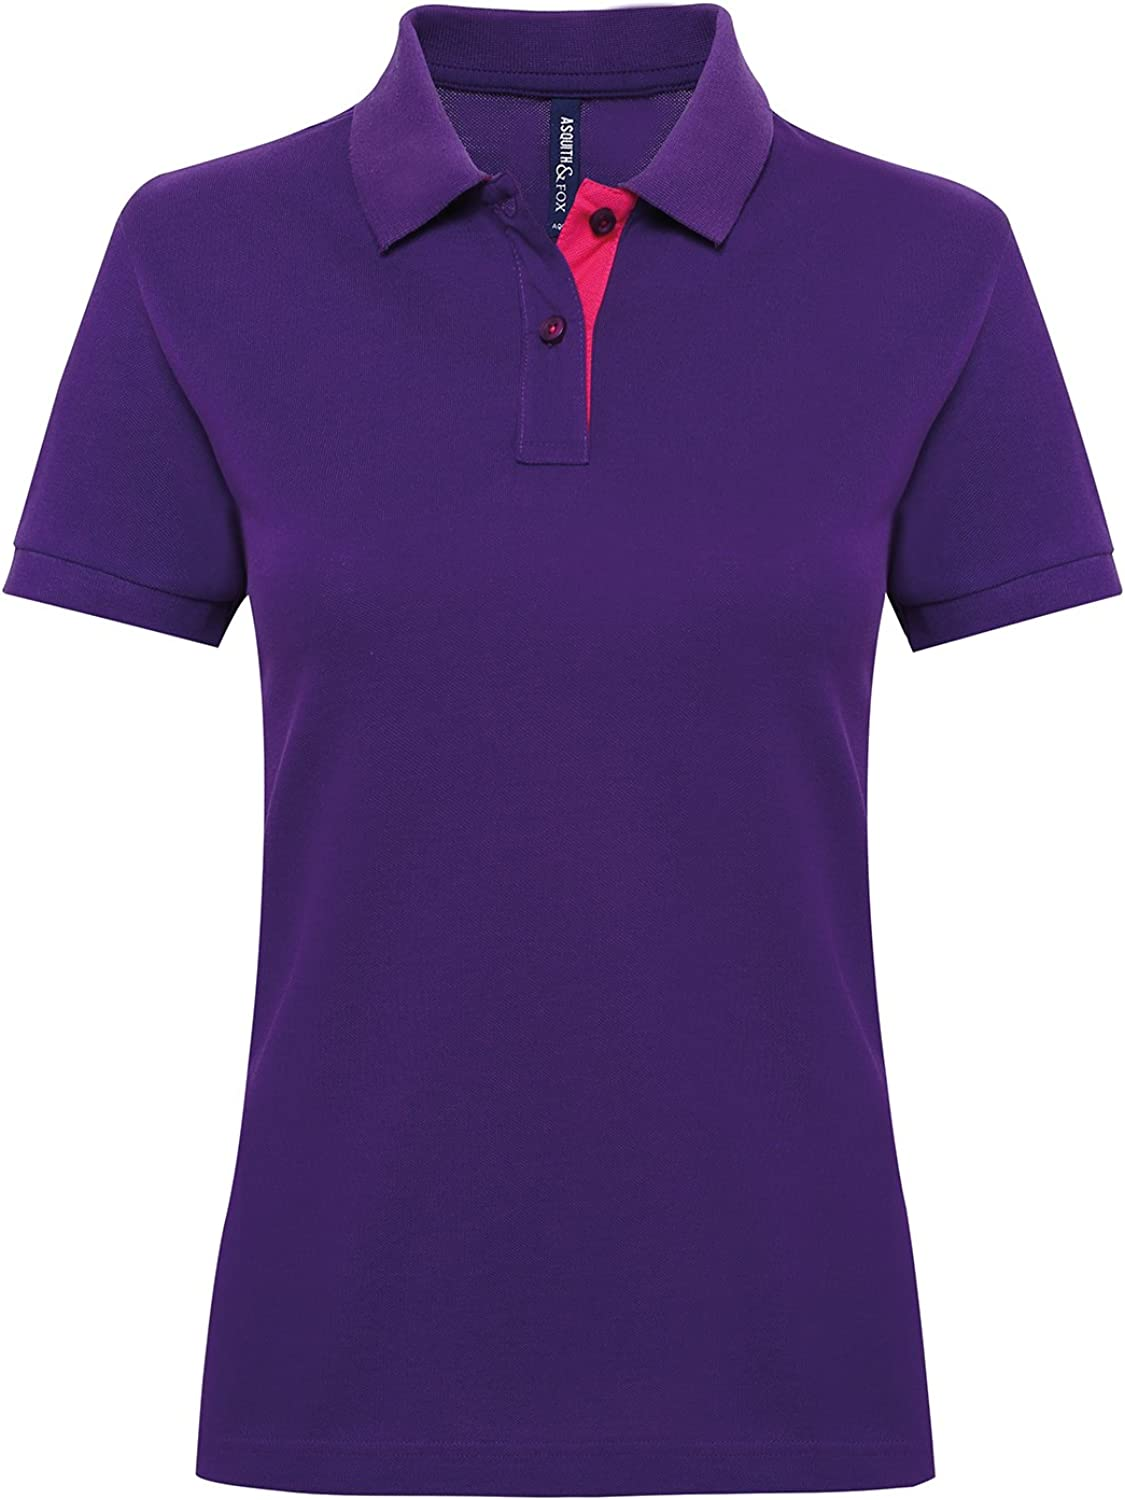 Asquith & Fox Womens Contrast Short Sleeved Polo Shirt - 14 Colours Available